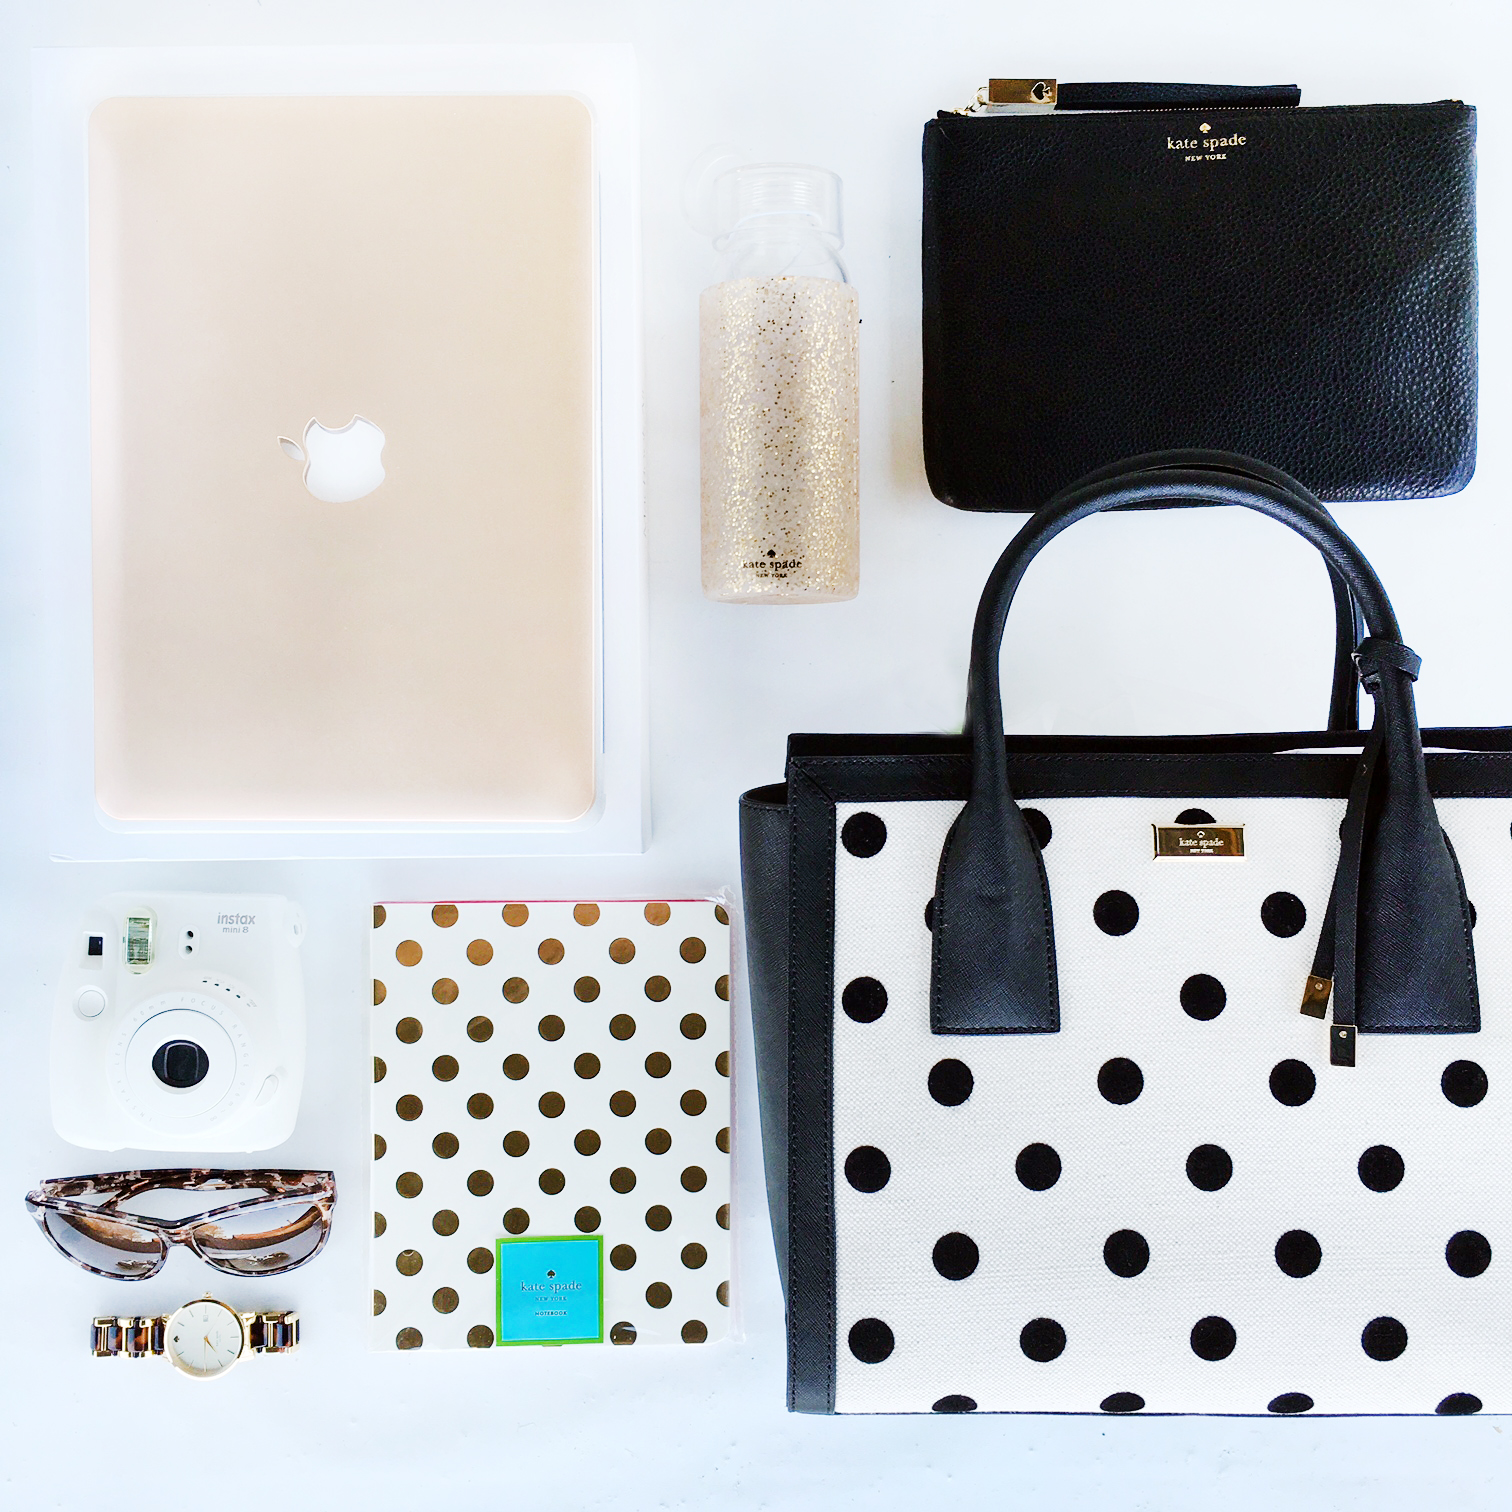 Kate Spade and Macbook Giveaway